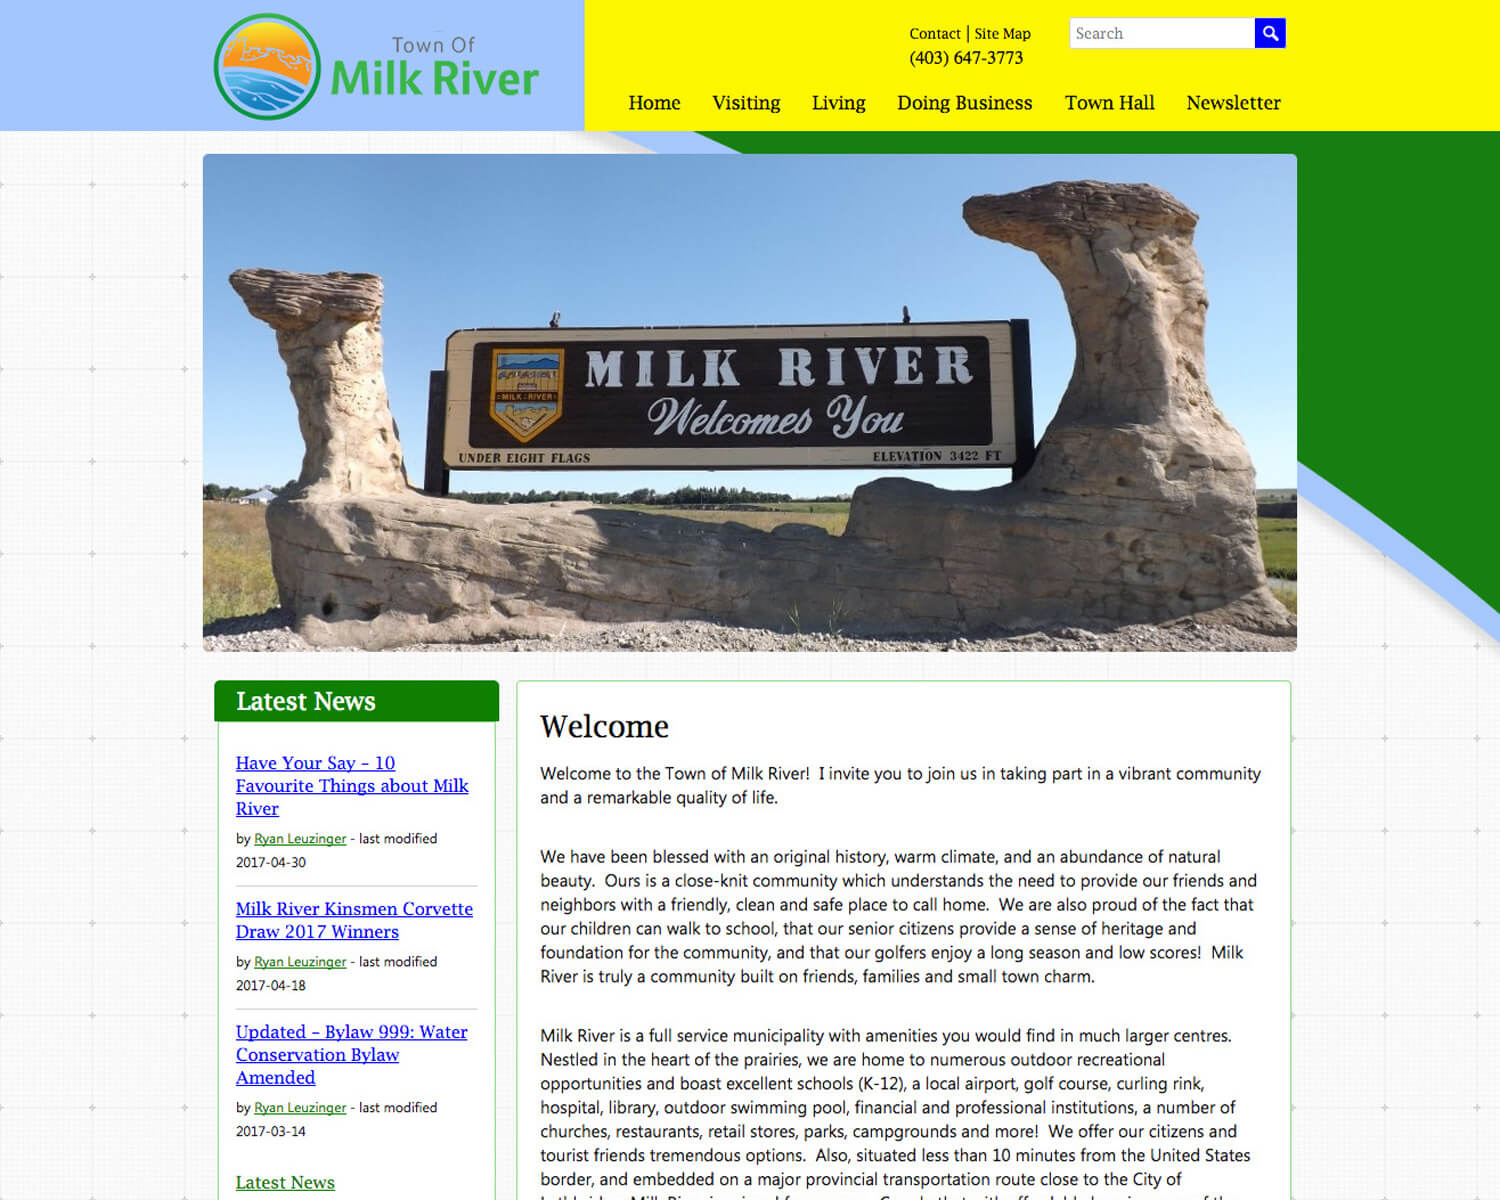 Town of Milk River